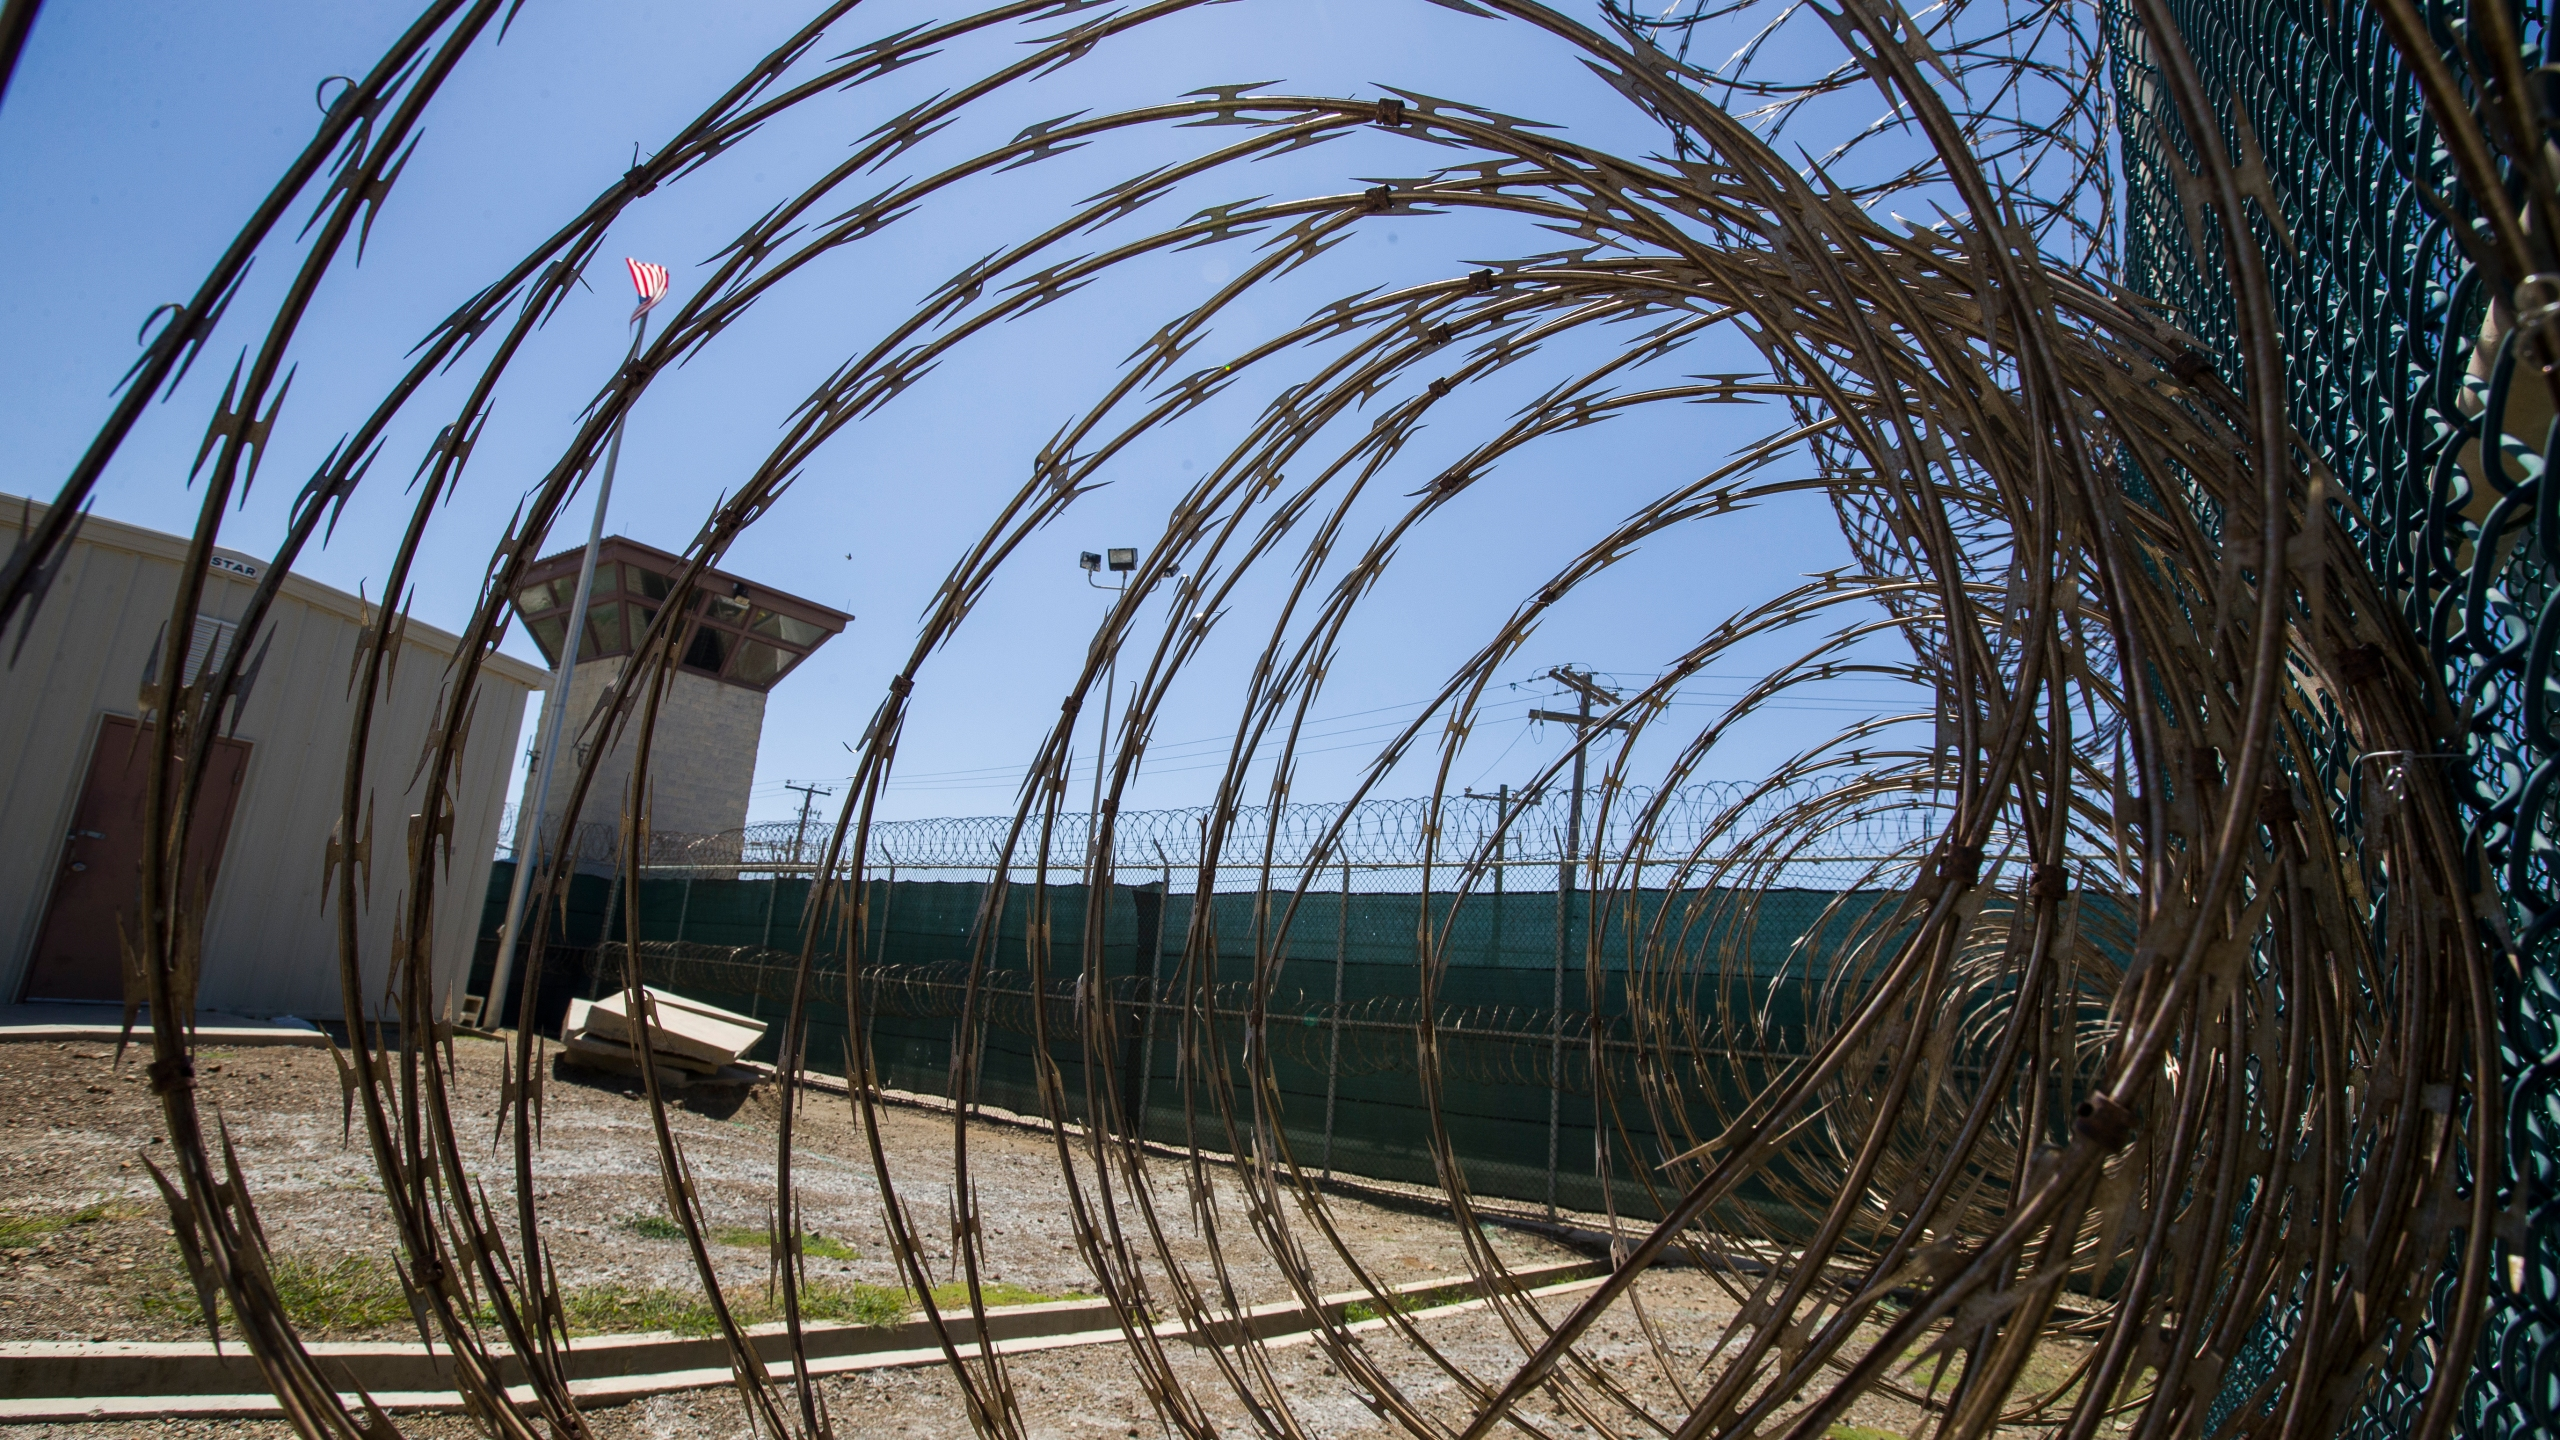 In this Wednesday, April 17, 2019 file photo reviewed by U.S. military officials, the control tower is seen through the razor wire inside the Camp VI detention facility in Guantanamo Bay Naval Base, Cuba. (AP Photo/Alex Brandon)